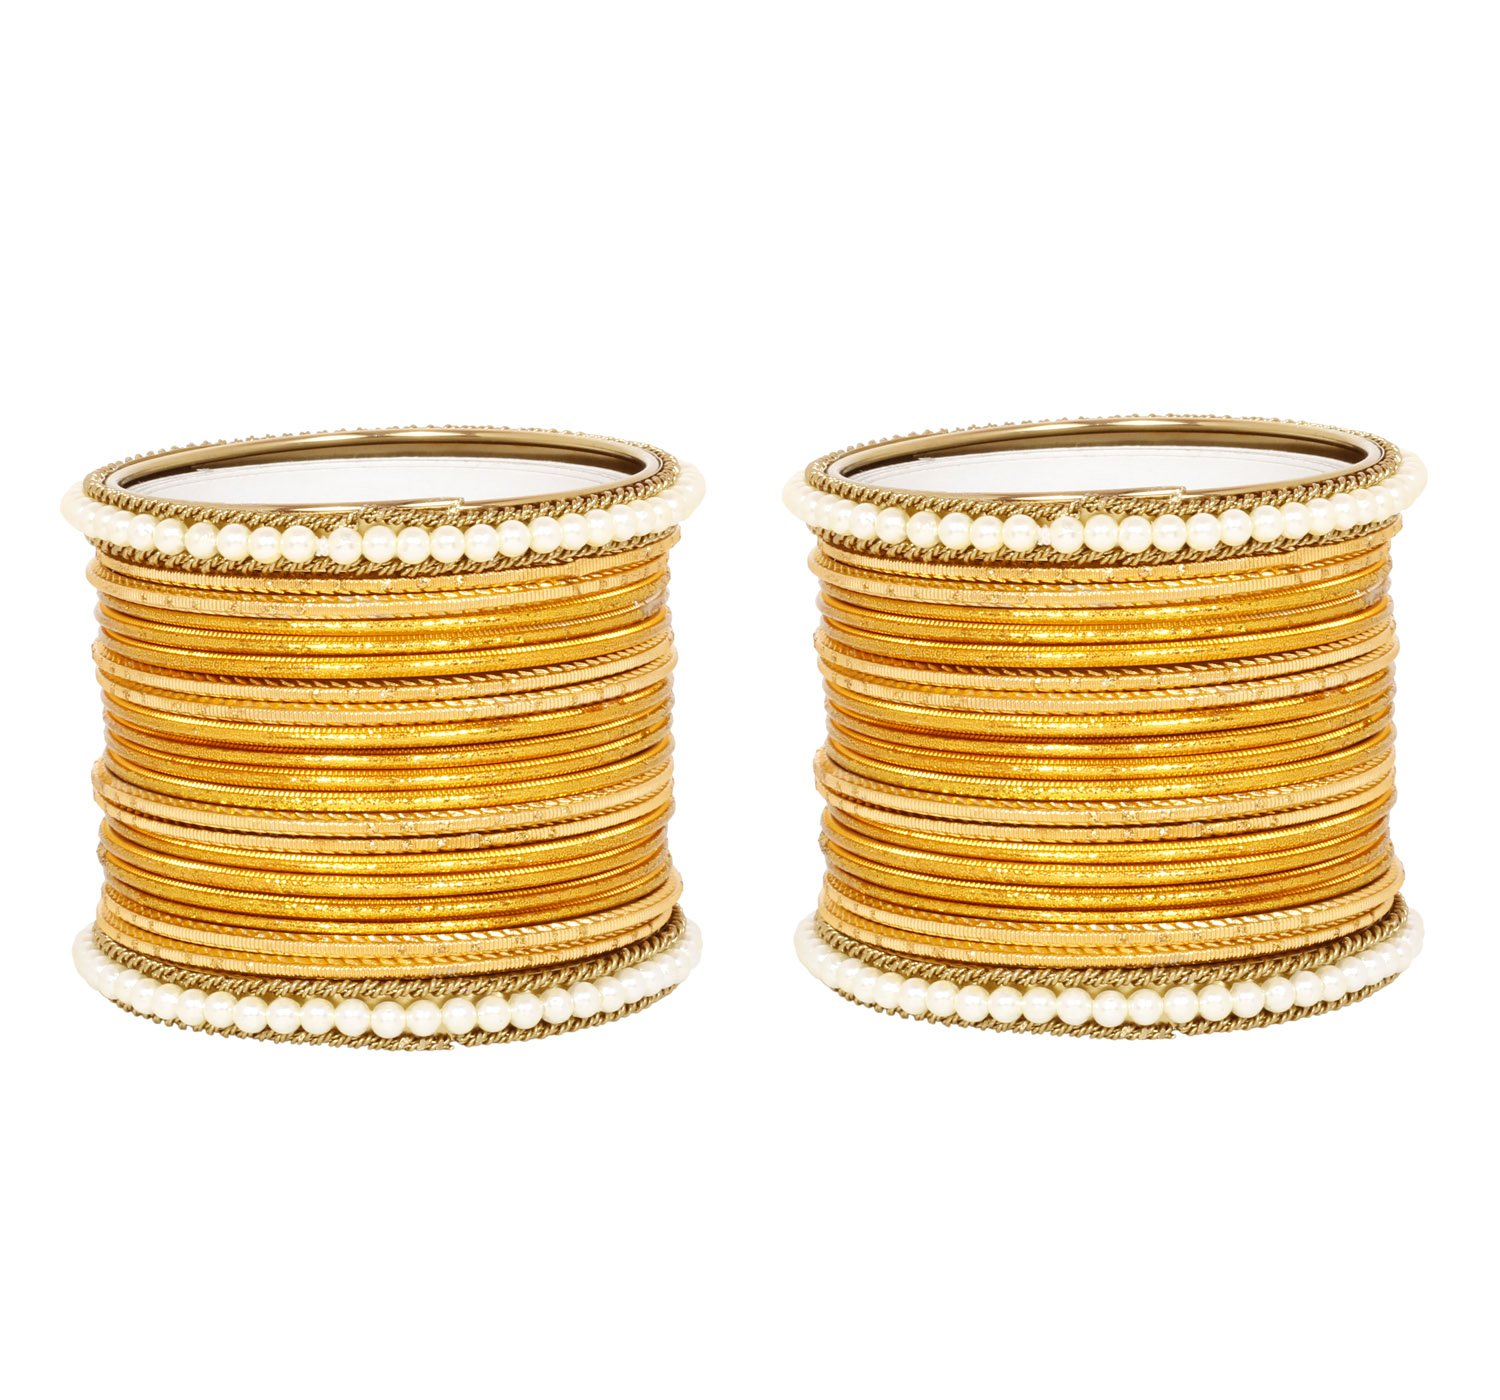 Ratna Exclusive Indian Turmeric color Wedding & Engagement ceremony bangle set women bangles (2.4)